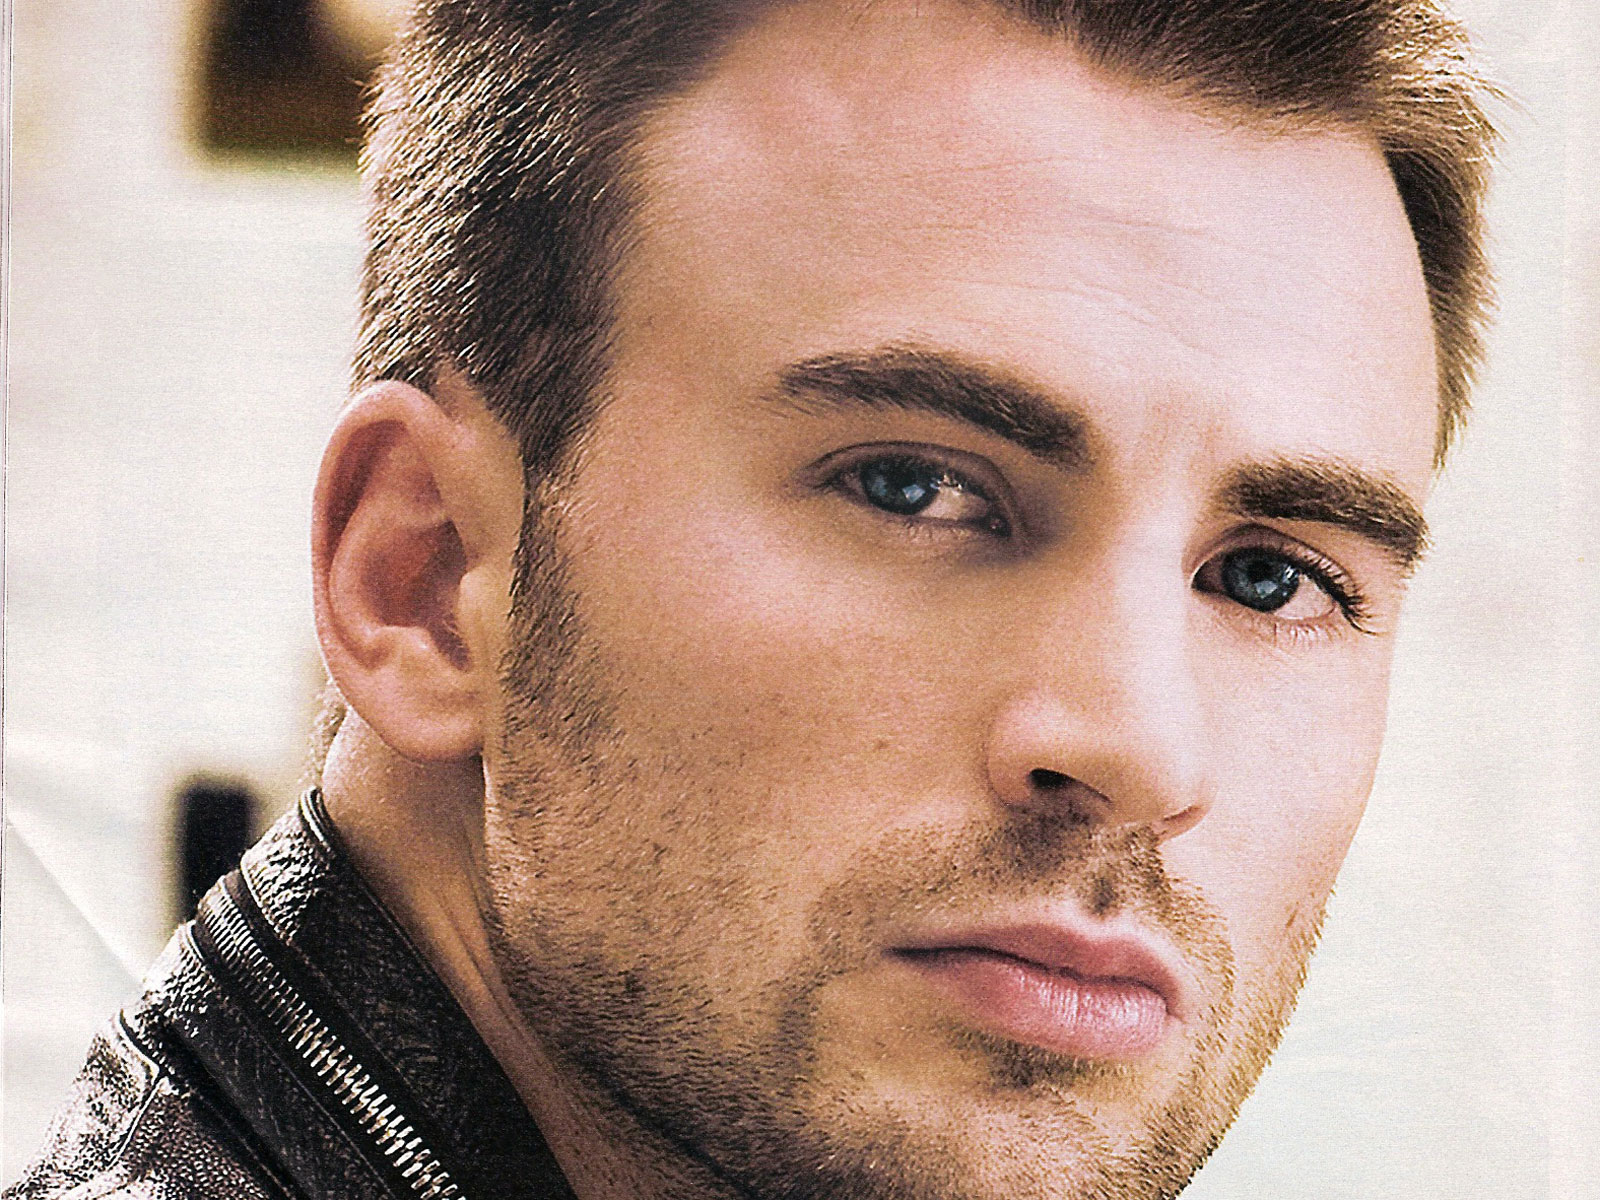 Chris Evans, who has no connection to  Maxim Ultra  outside my imagination.